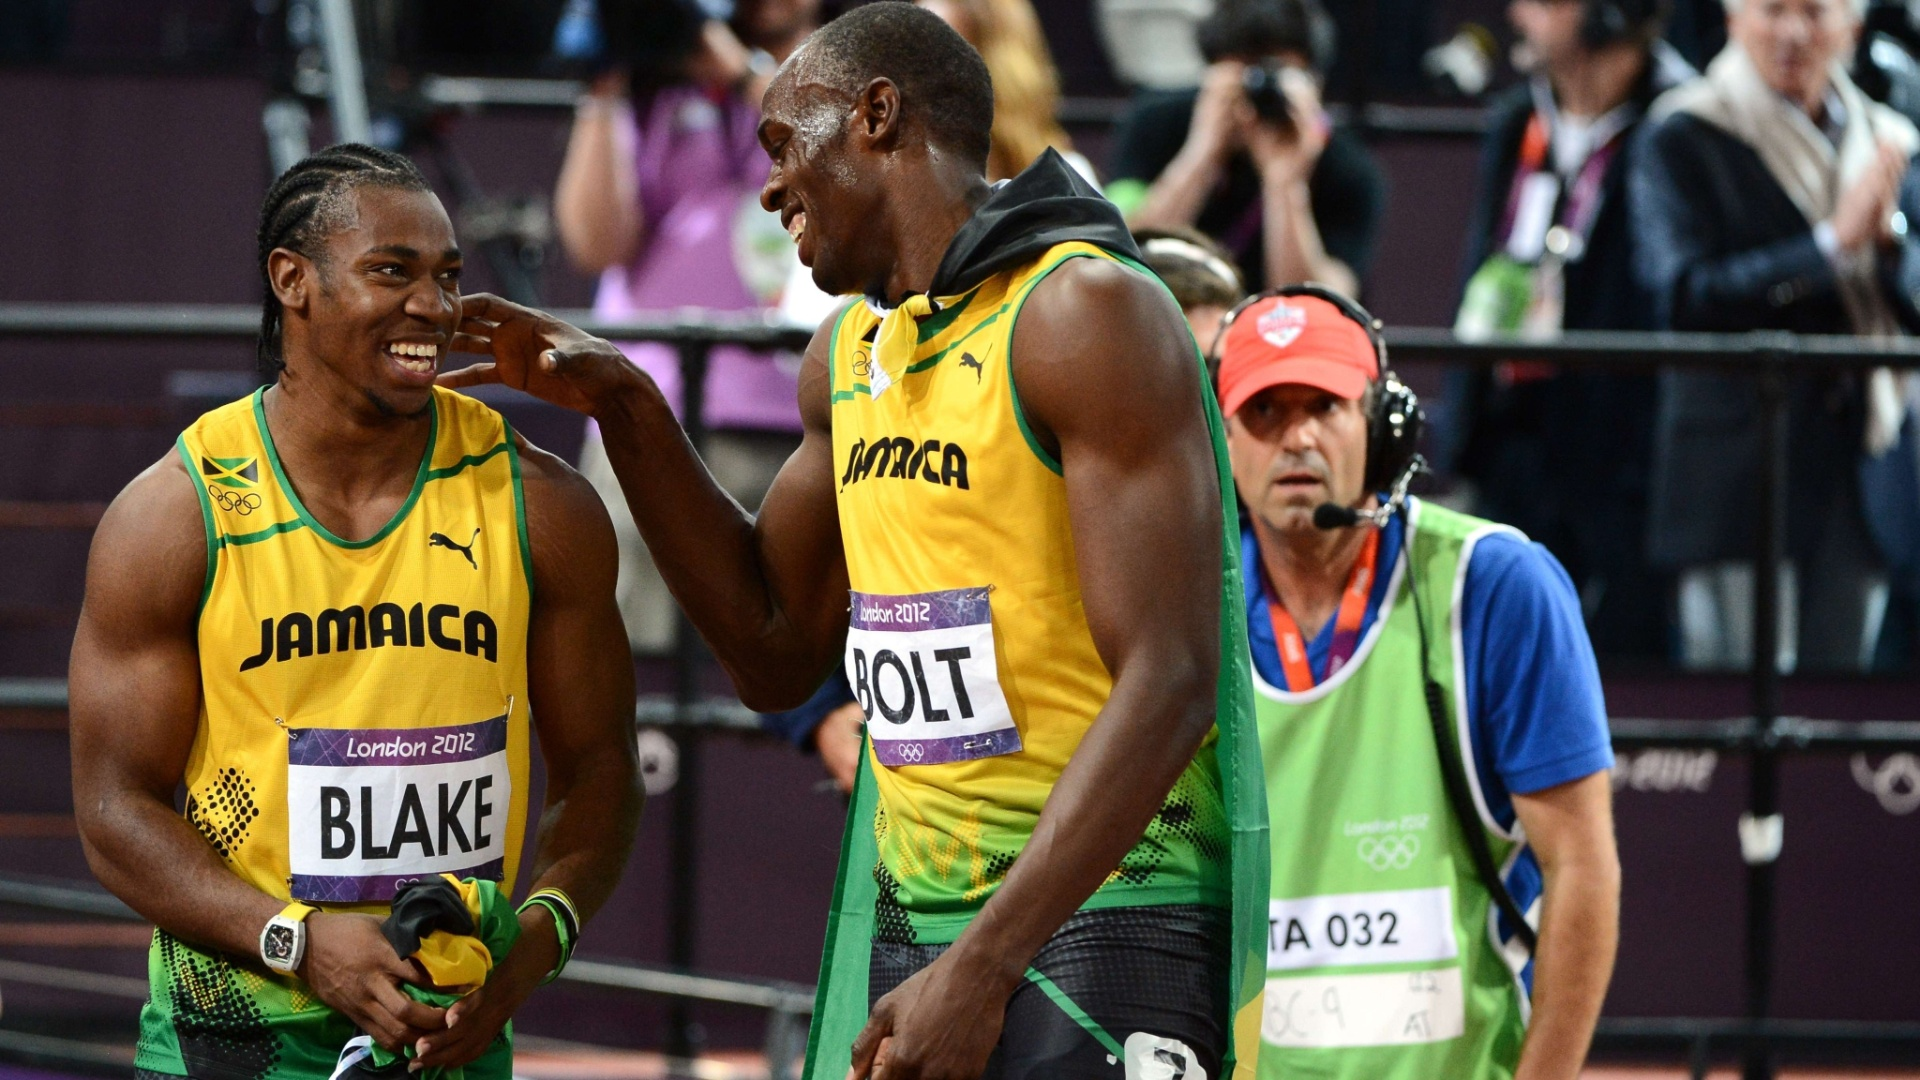 Usain Bolt celebra vitria na final dos 100 m rasos com Yohan Blake, segundo colocado na prova